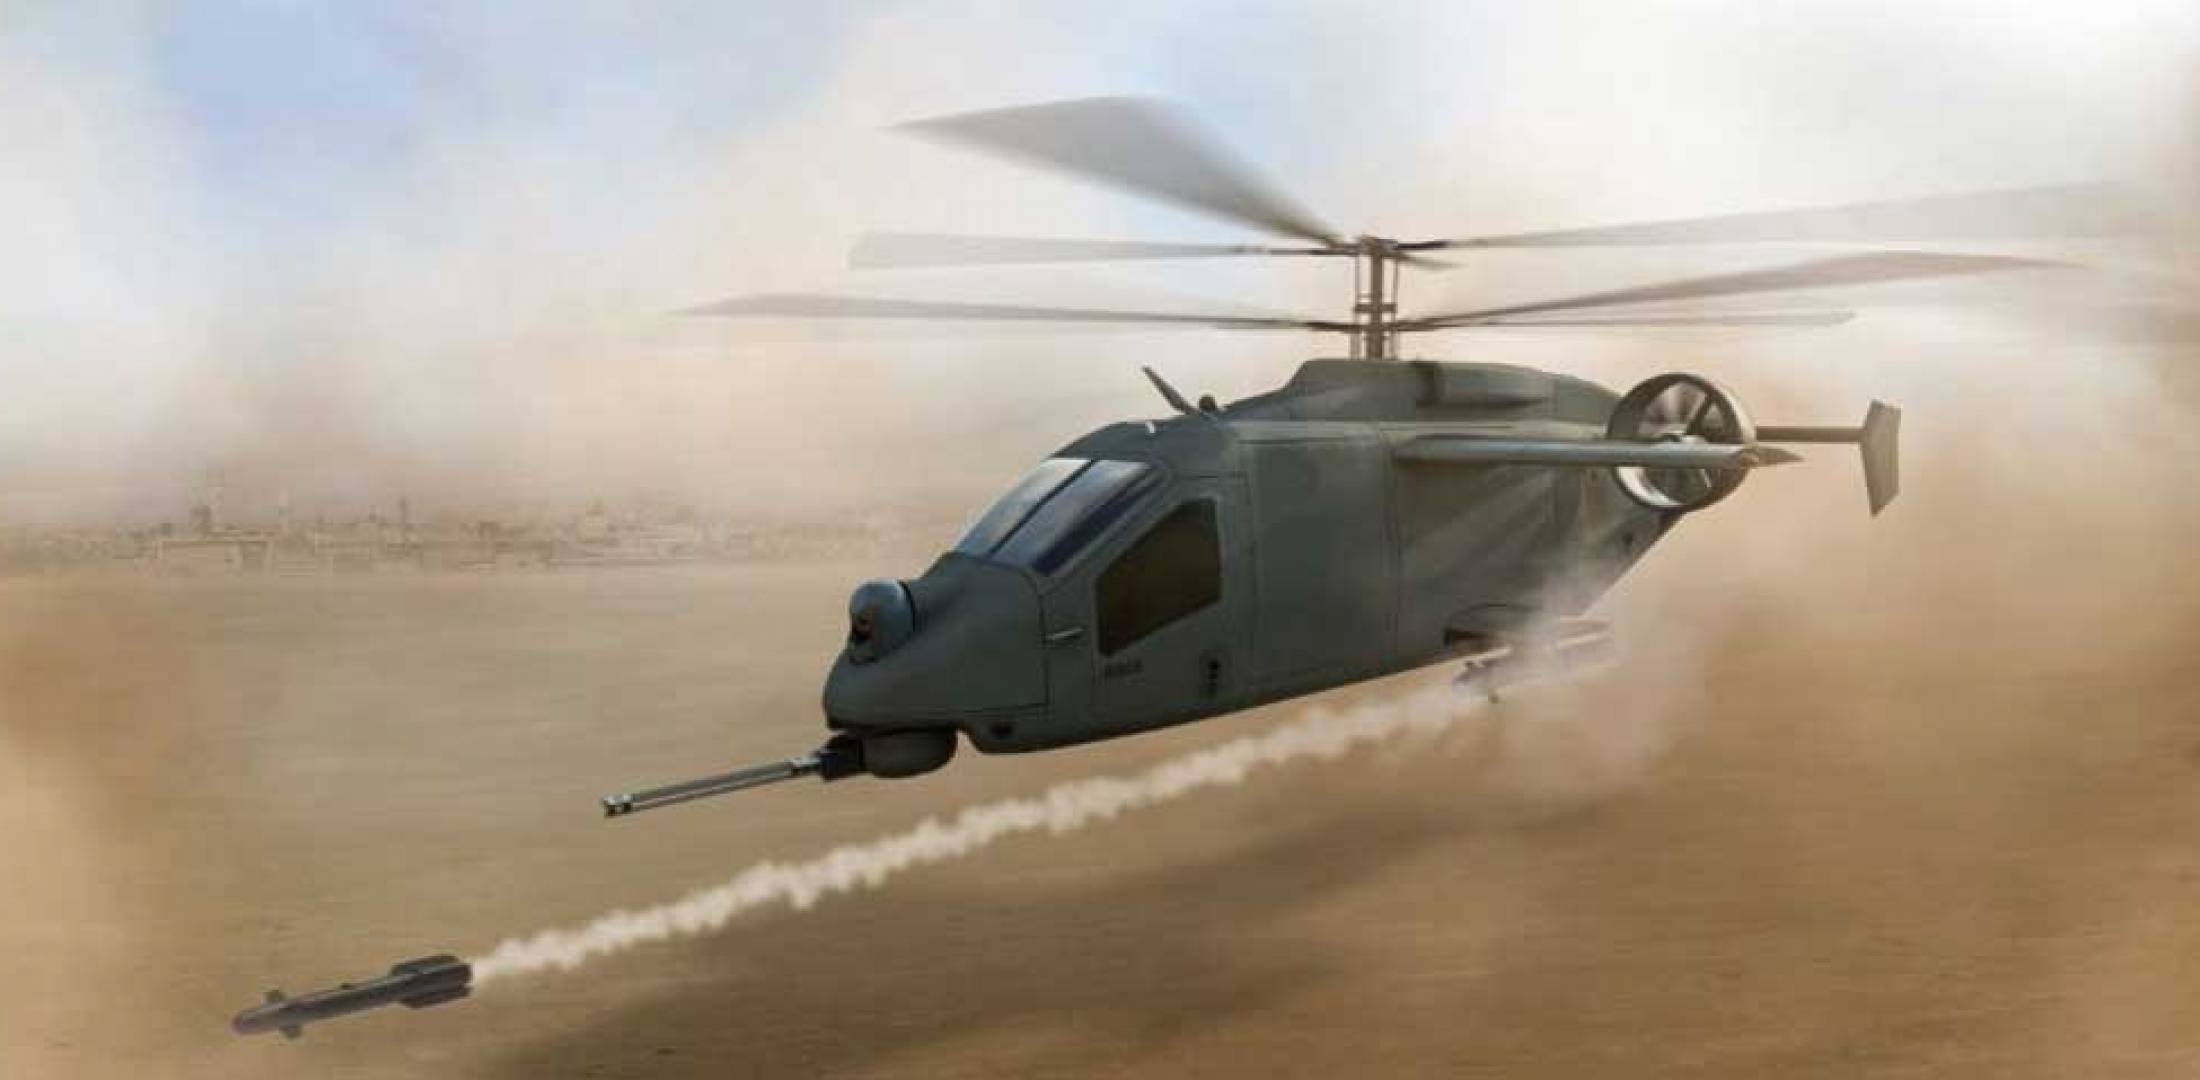 AVX coaxial rotor/ducted fan compound helicopter design